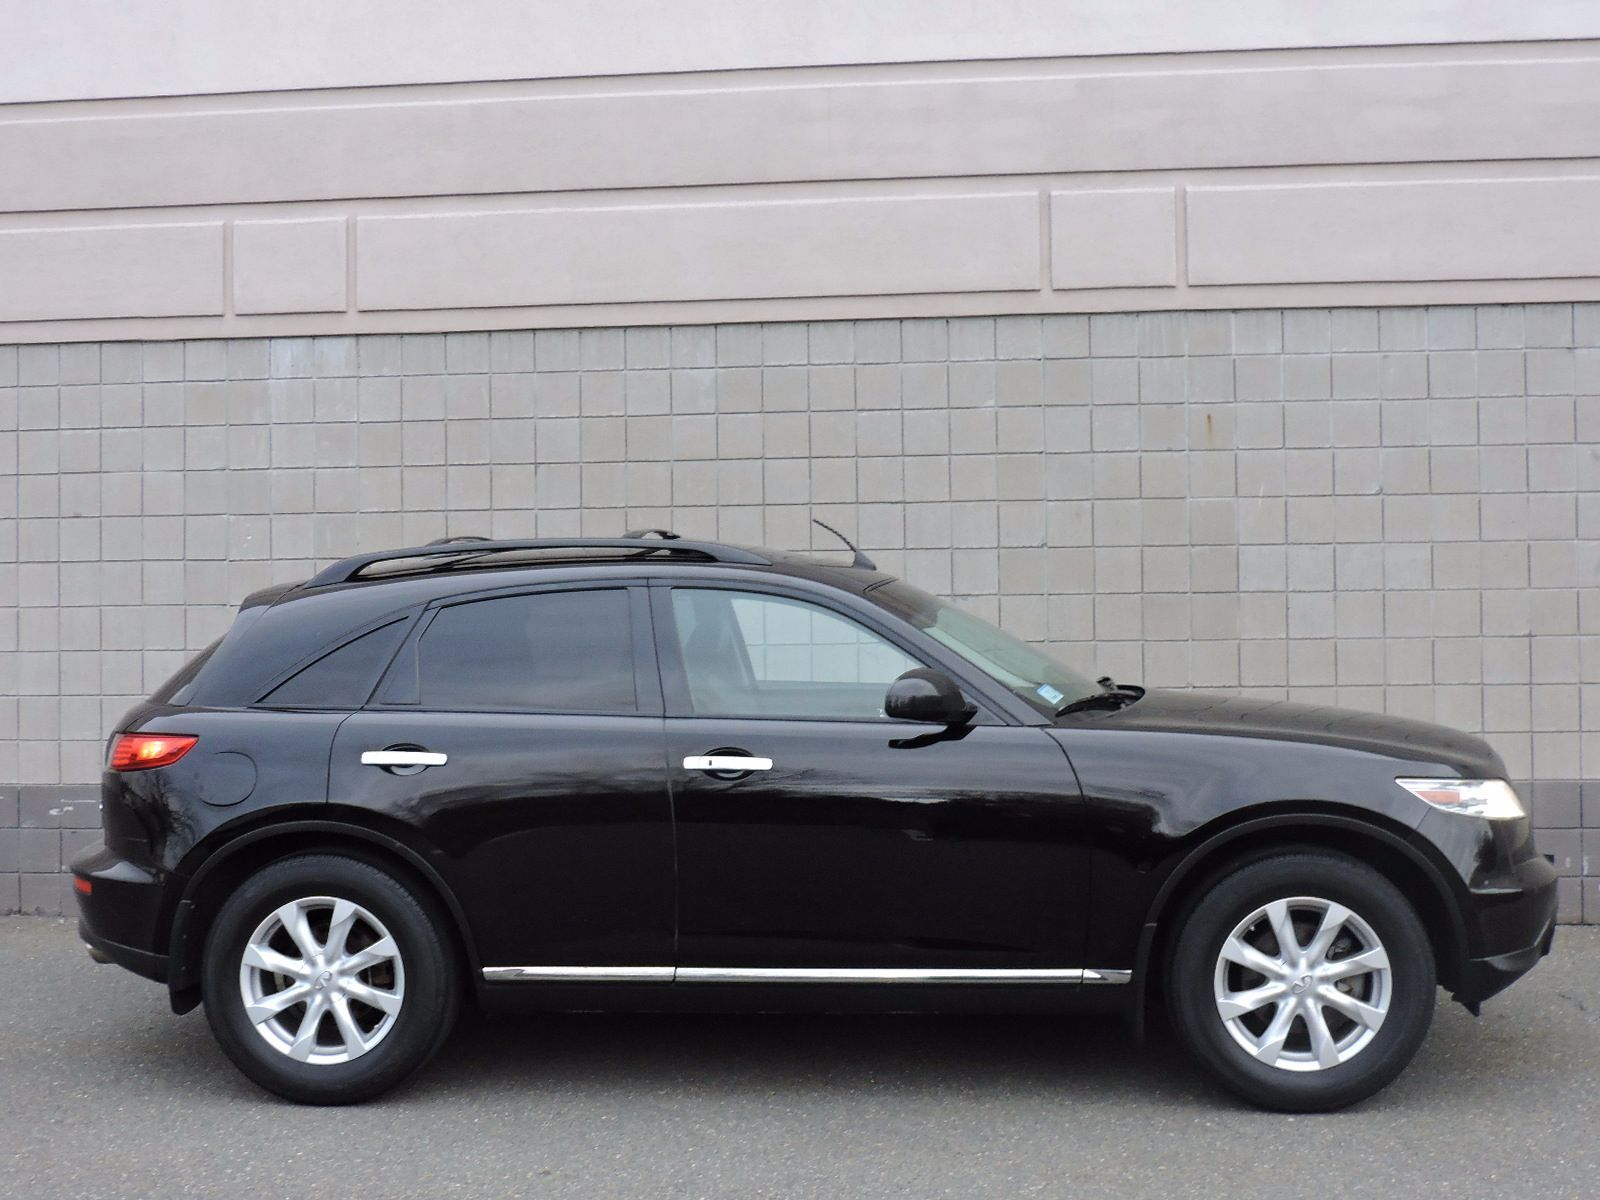 Used 2008 infiniti fx35 hse at auto house usa saugus 2008 infiniti fx35 all wheel drive vanachro Gallery